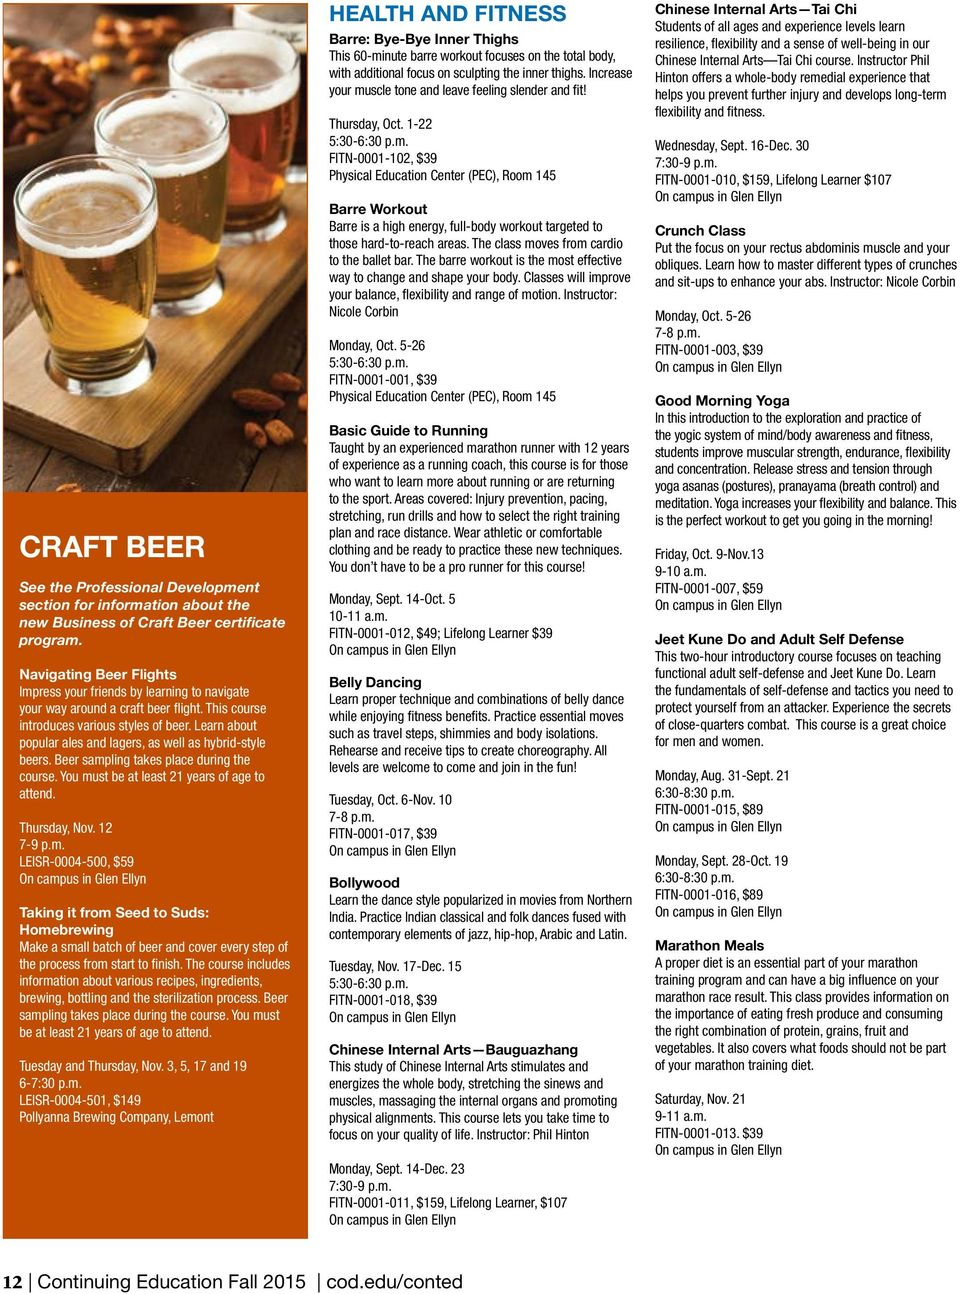 Learn about popular ales and lagers, as well as hybrid-style beers. Beer samp